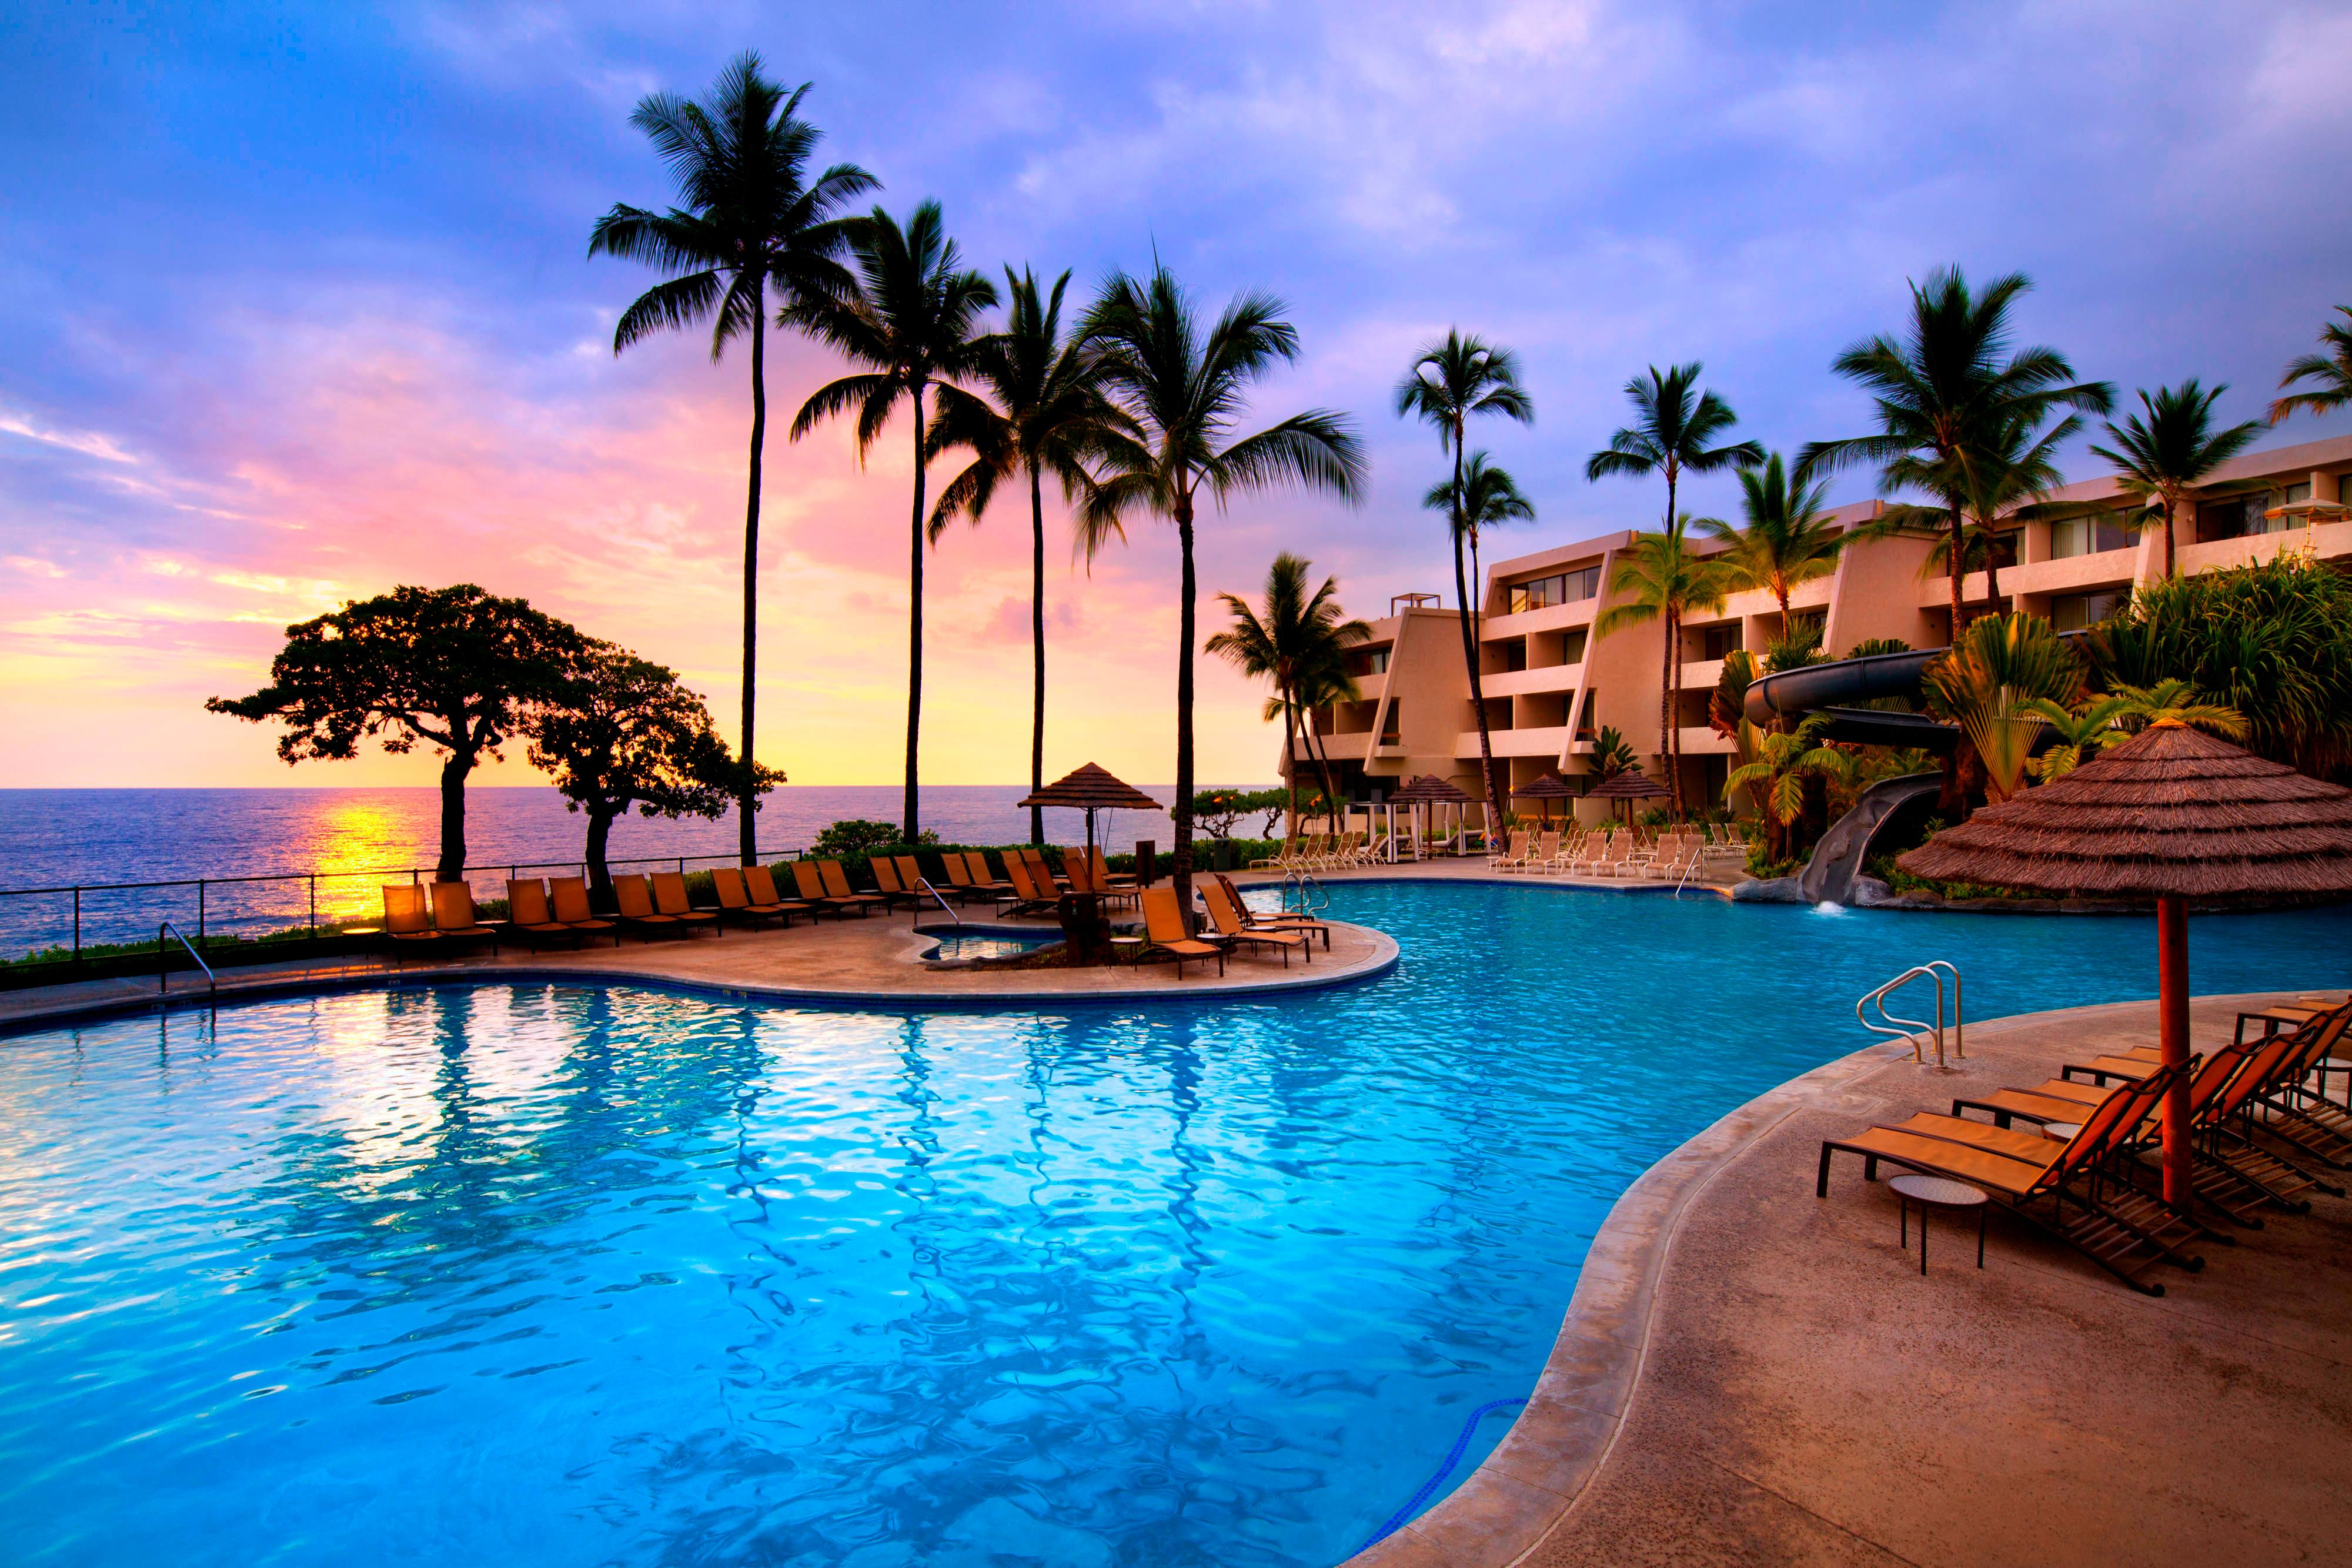 Where to Stay on the Big Island: Kona or Hilo, tips featured by top Hawaii blog, Hawaii Travel with Kids: Pool at Sheraton Kona Resort & Spa at Keauhou Bay in Kona on the Big Island of Hawaii